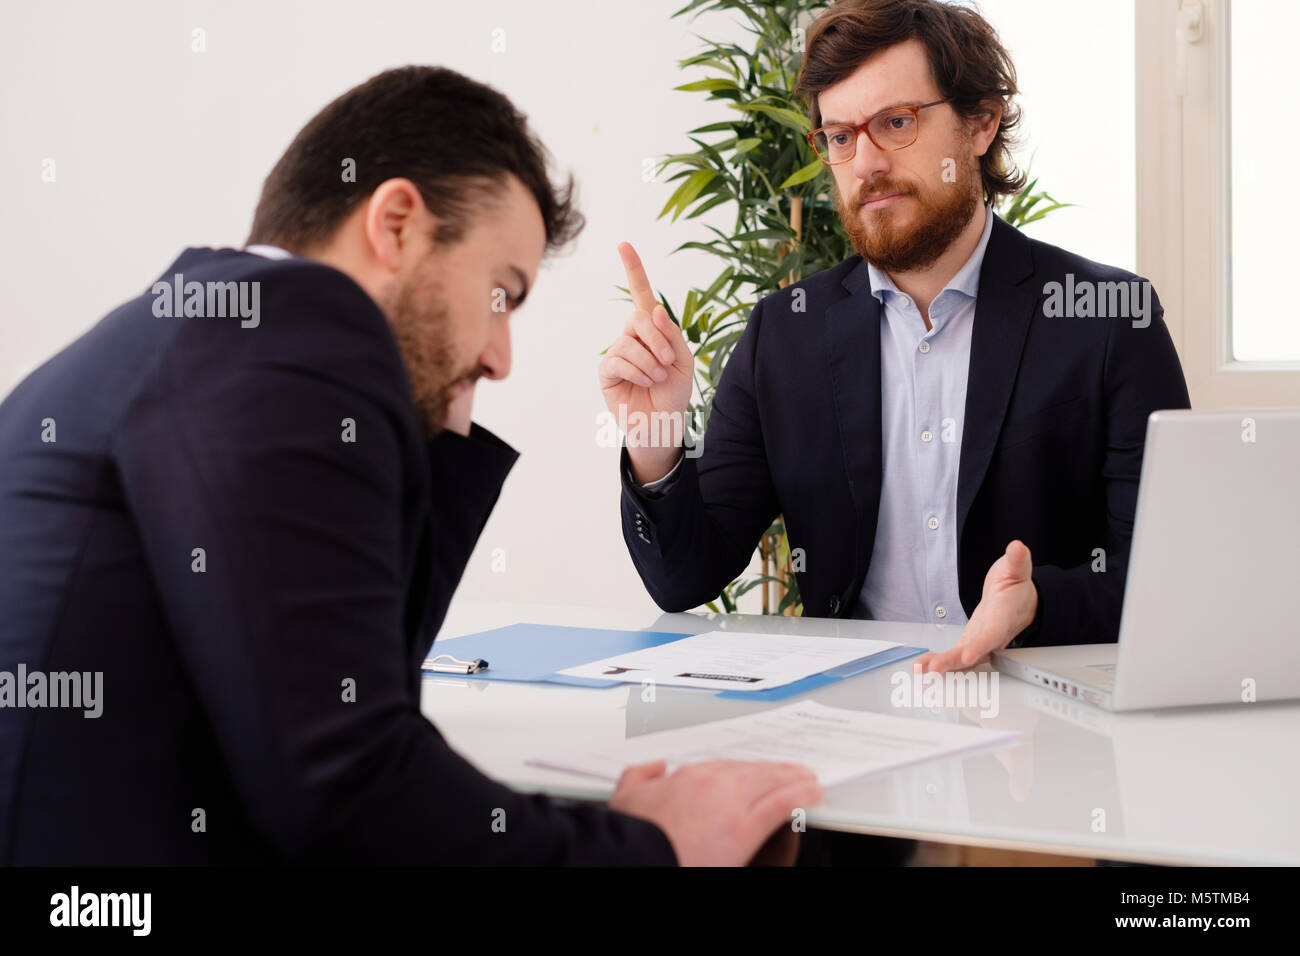 Anxious employee after a mistake during a boss conversation - Stock Image